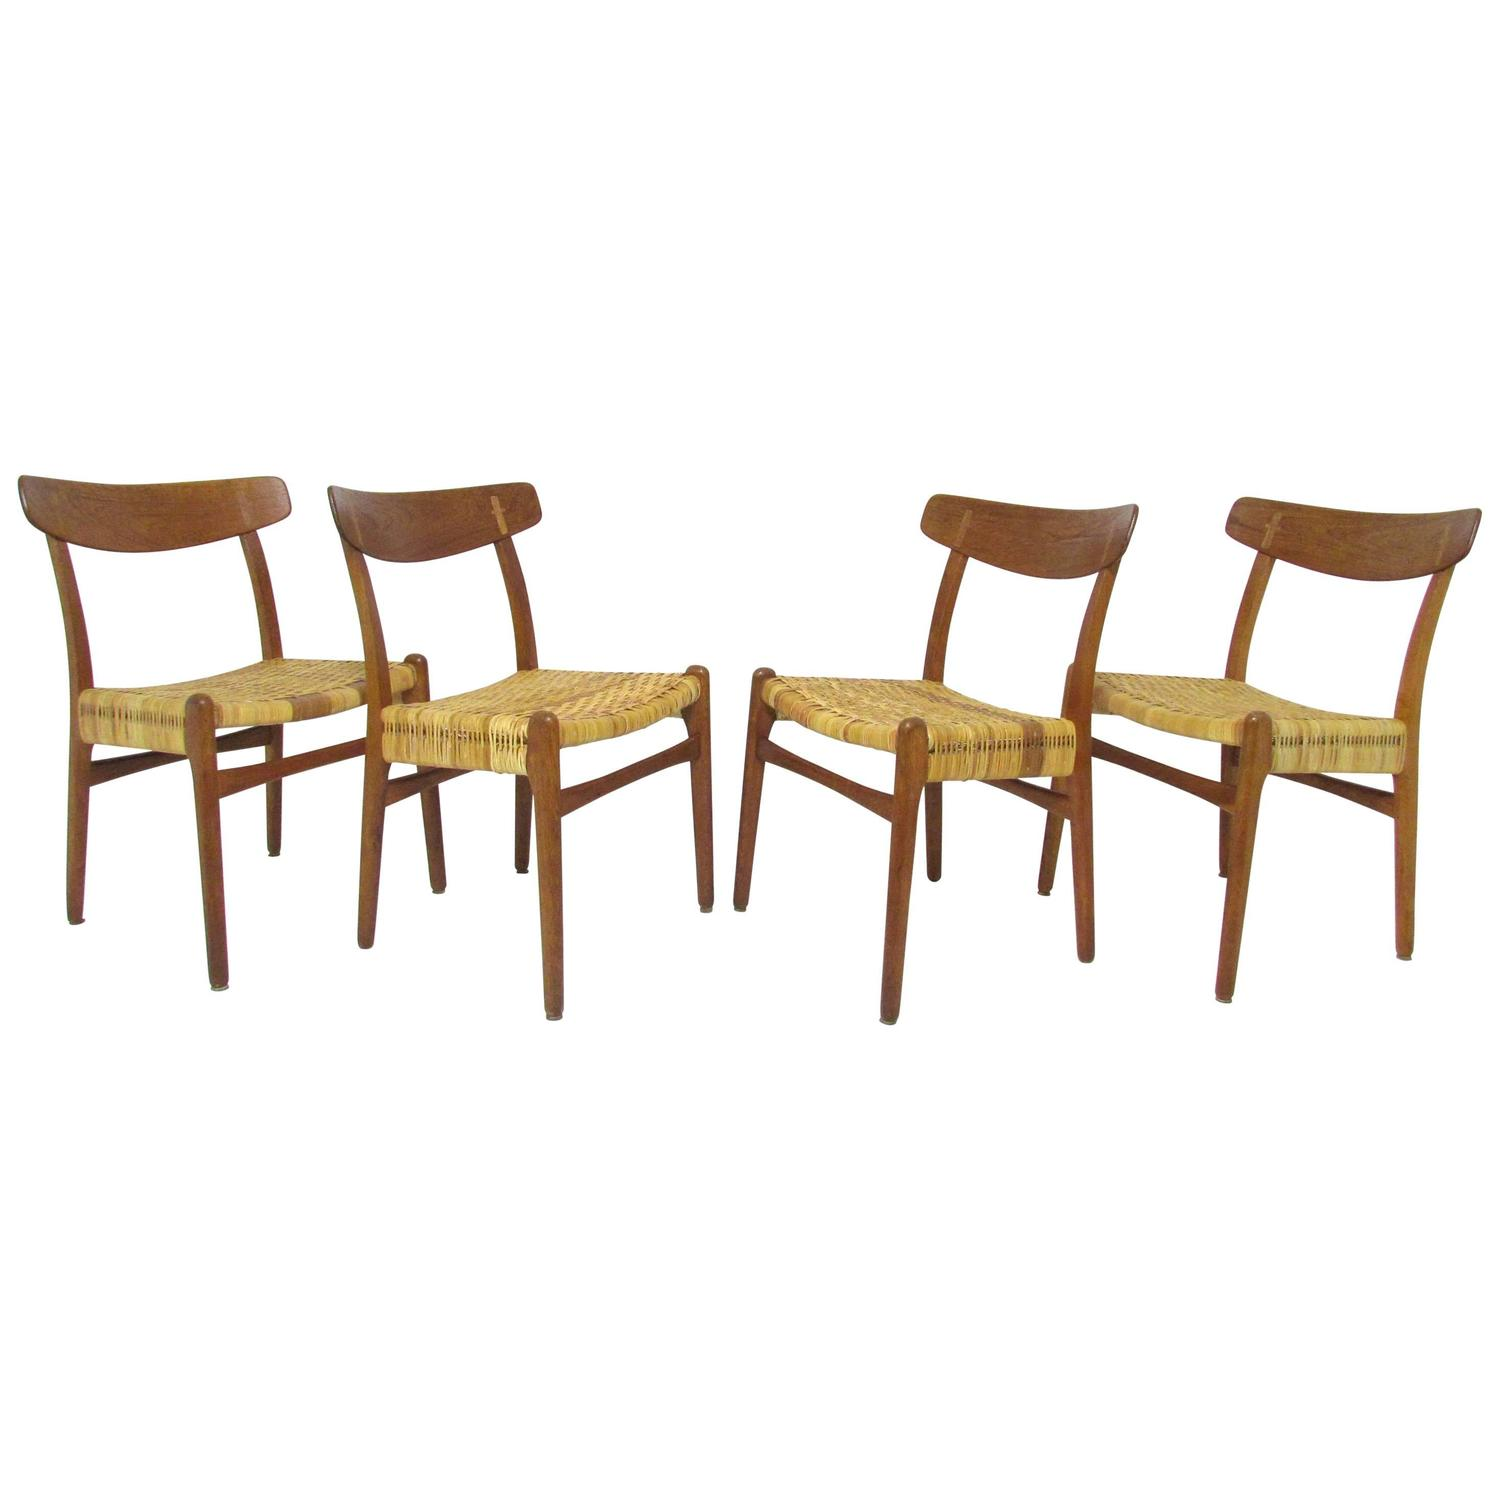 Teak extension dining table in excellent condition very clean and - Set Of Four Hans Wegner Ch 23 Dining Chairs In Cane Teak And Oak Circa 1950s